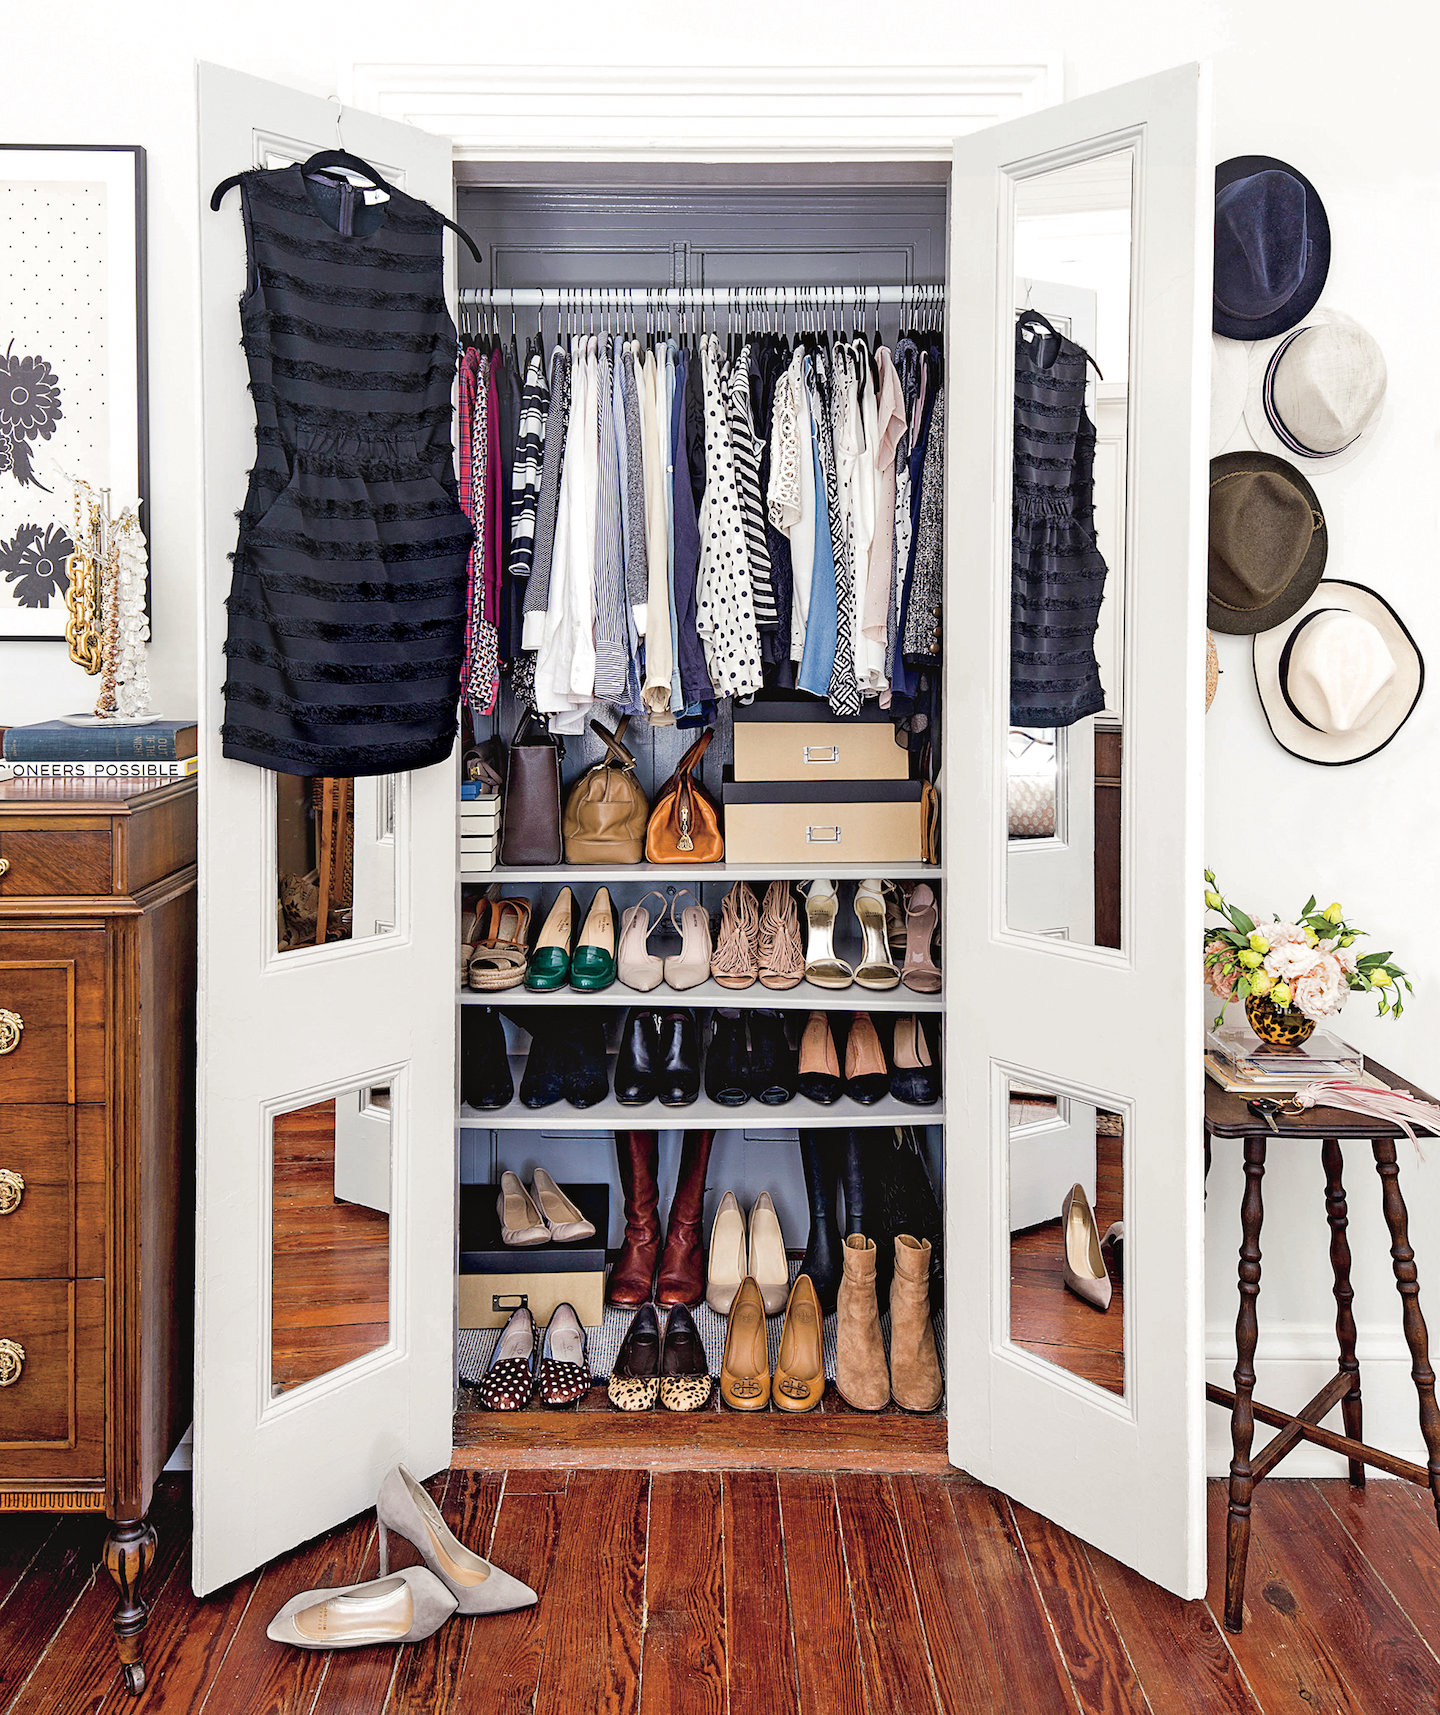 5 Genius Organization Tips To Steal From The Tist Closets Real Simple